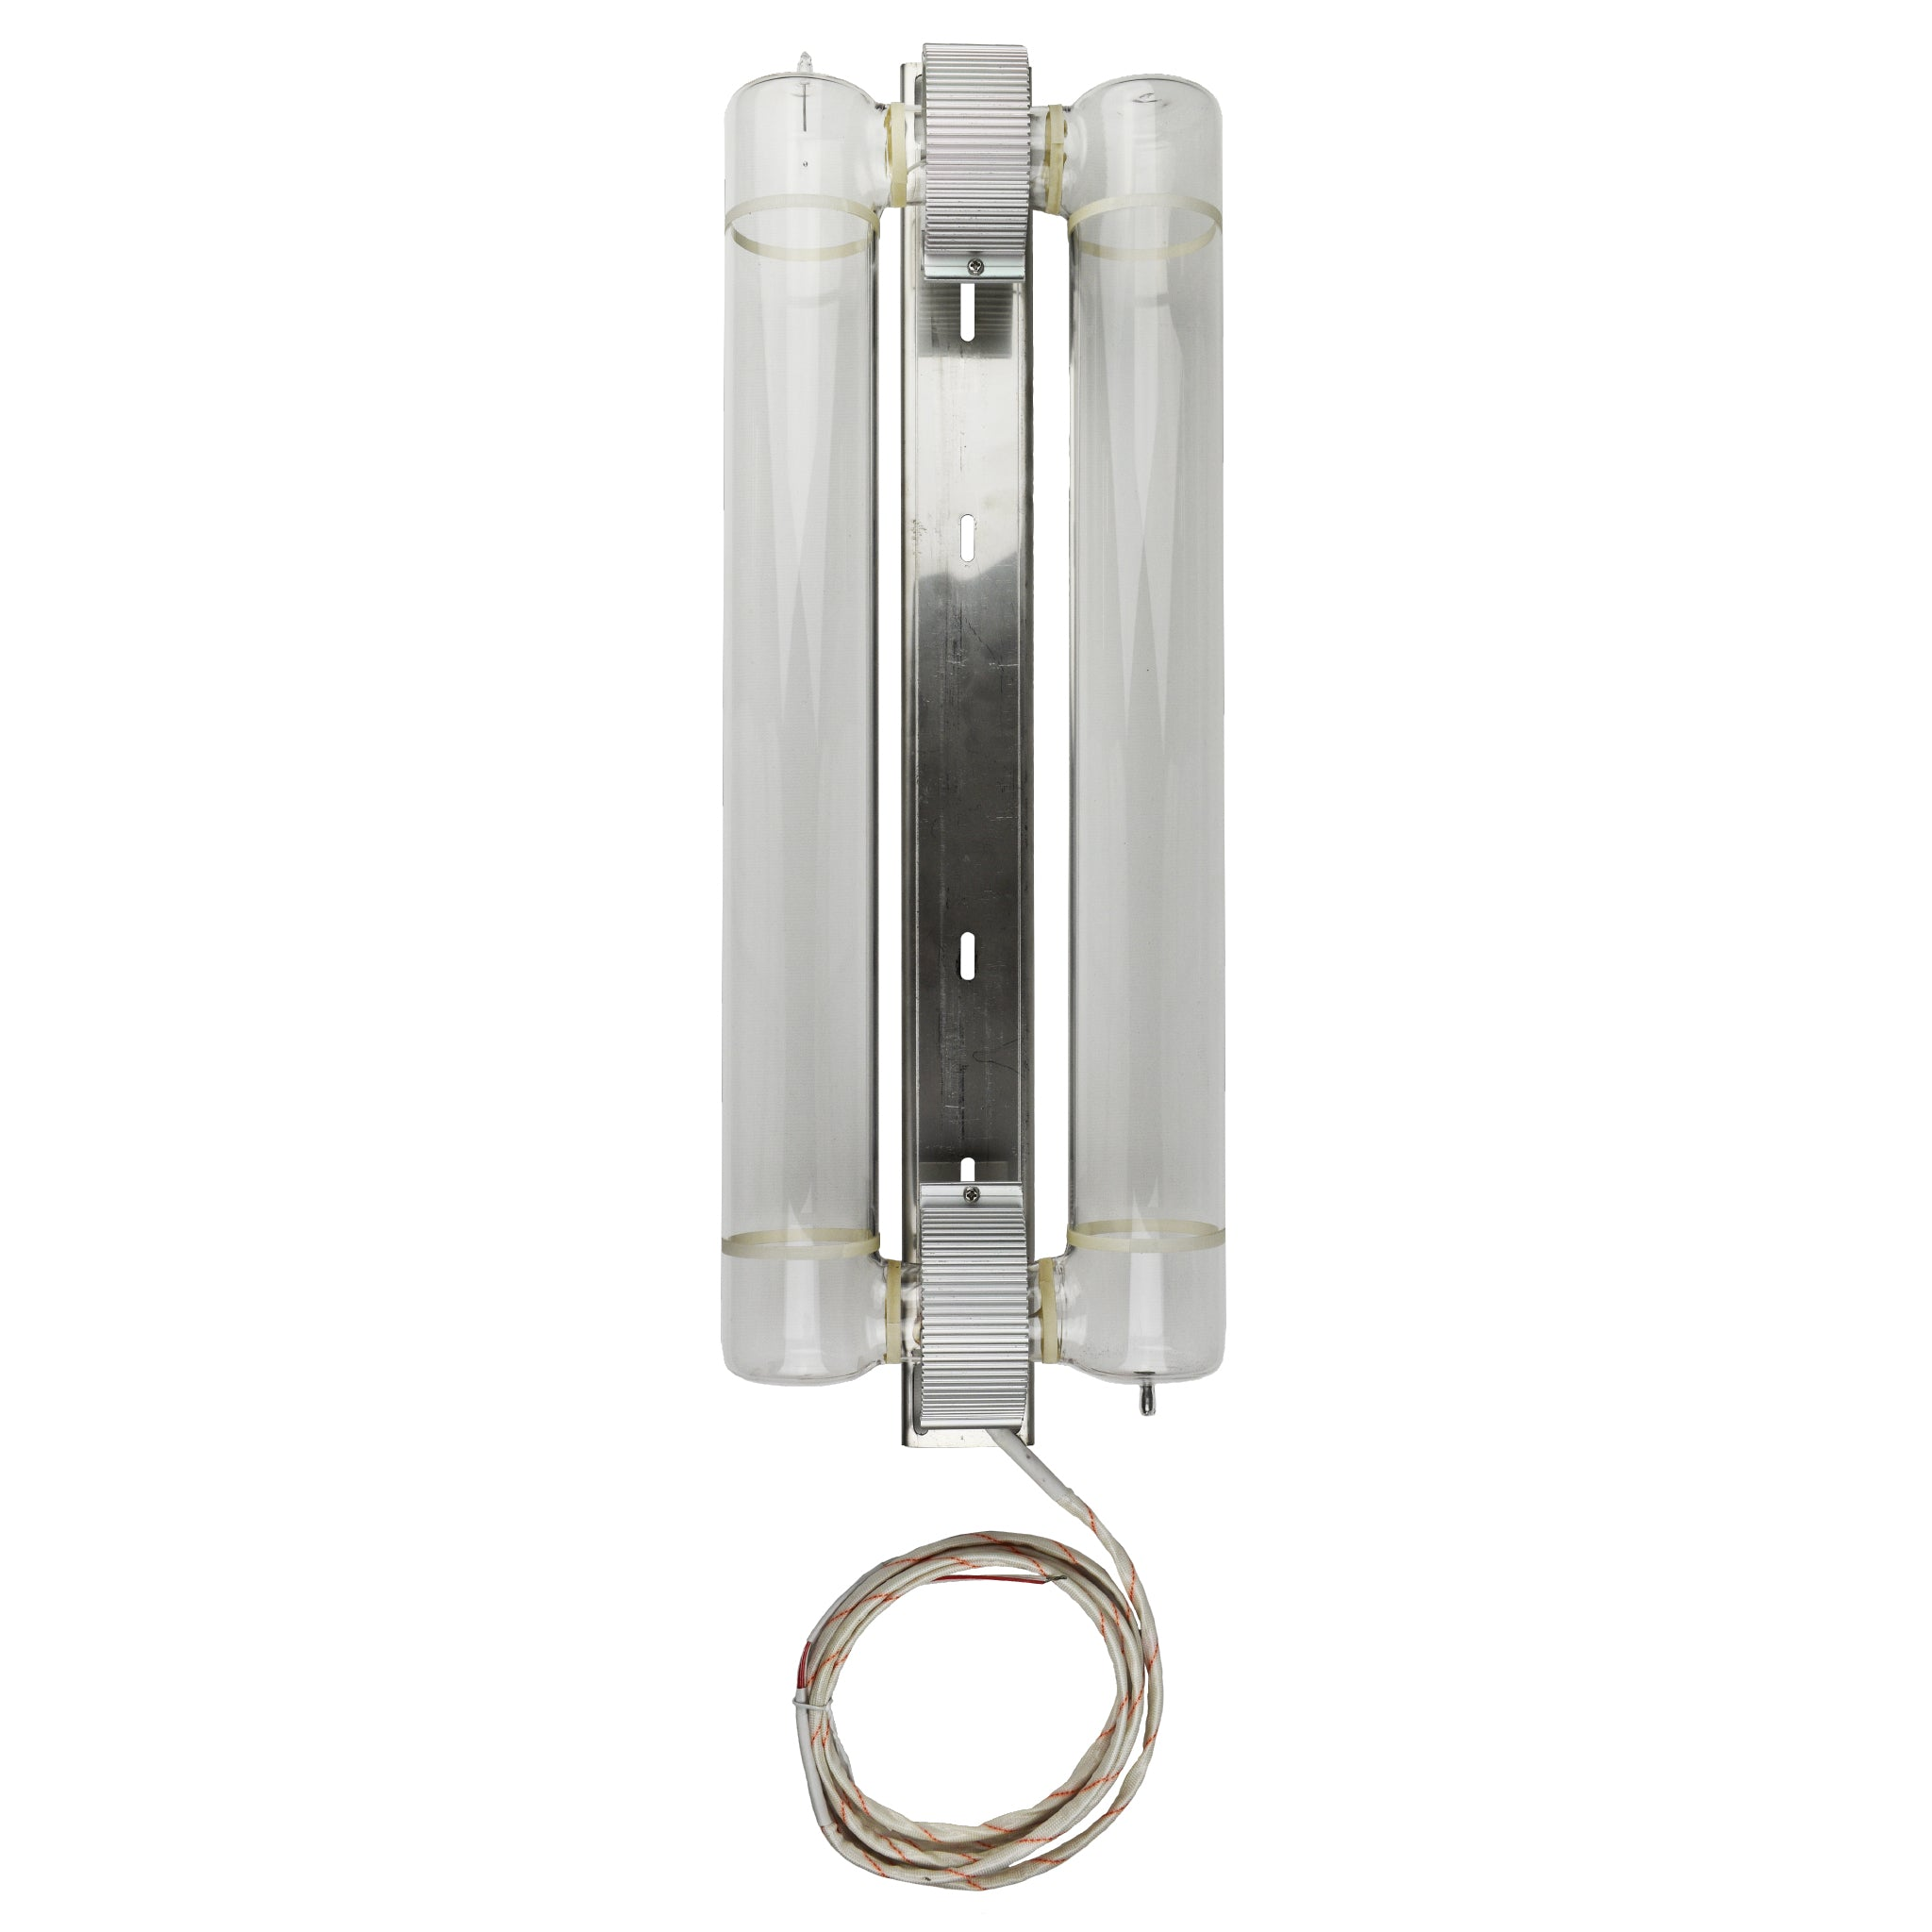 Replacement UVC Tube for UVC PureLight 360 Smart Sanitizer